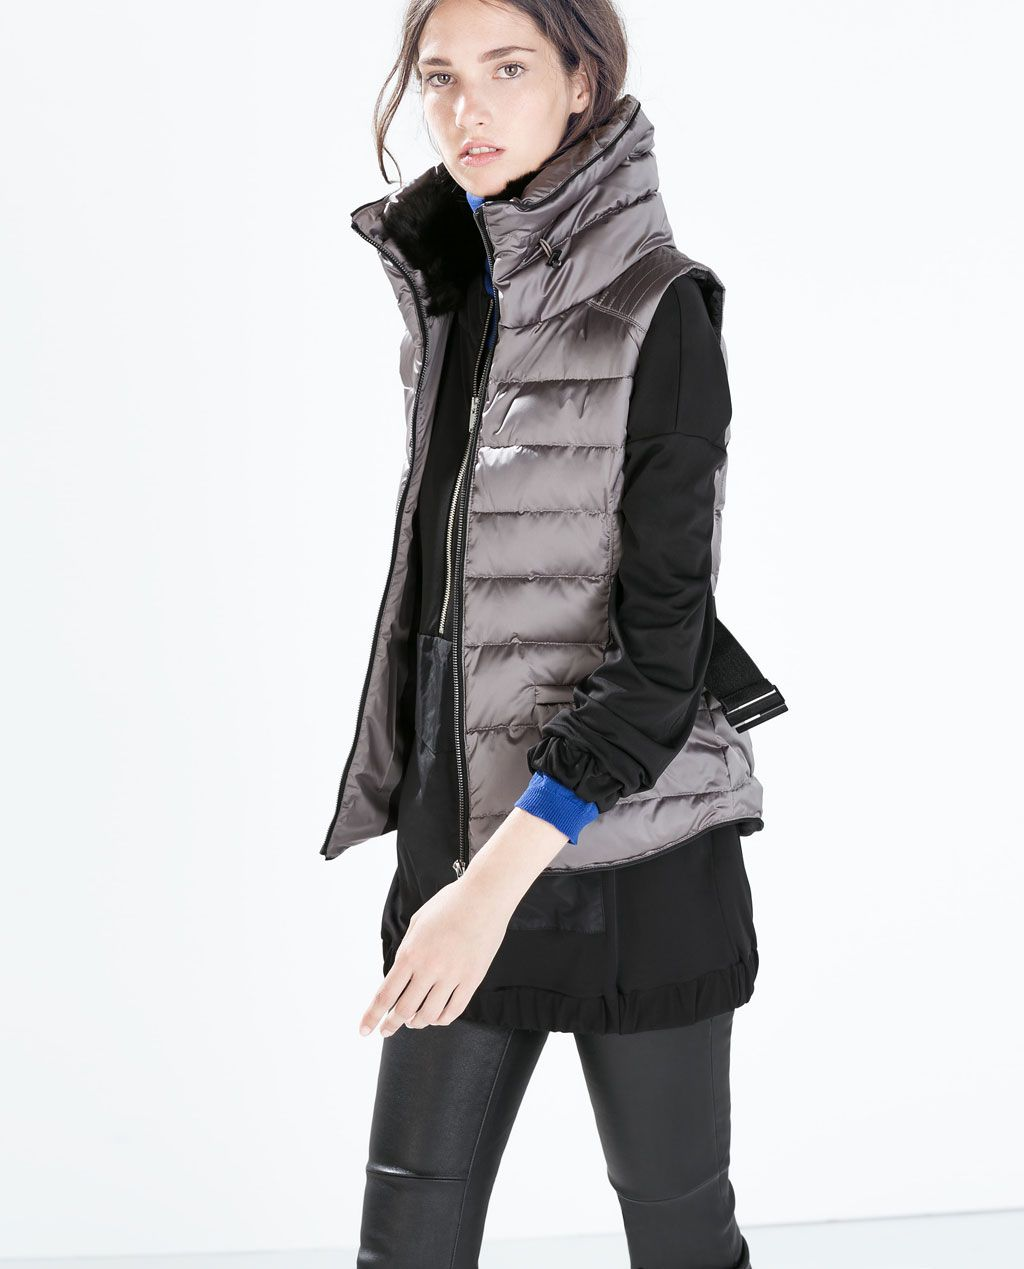 4501a8034c11f ZARA - WOMAN - DOWN VEST WITH BELT